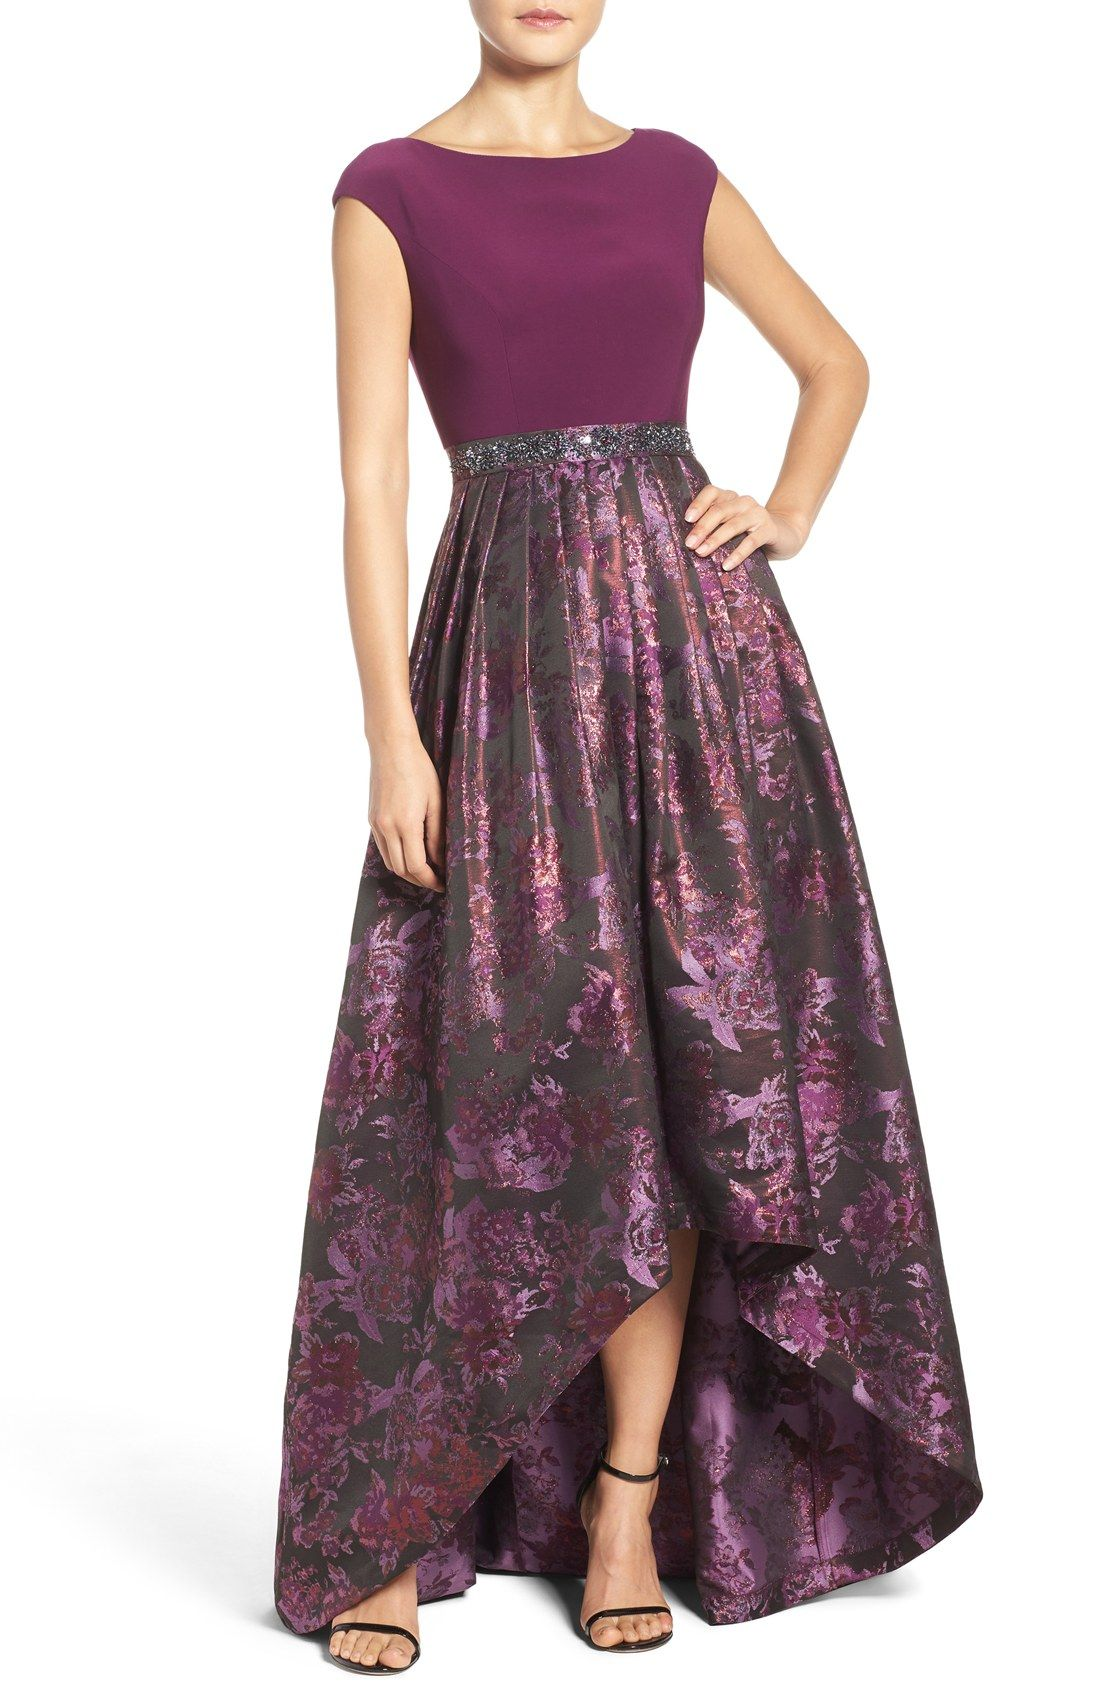 Fall Mother Of The Bride Dresses Mother Of The Bride Dresses For Autumn Weddings For Mothers Of The Bride And Mother Of Groom Dresses Bride Dress Mob Dresses